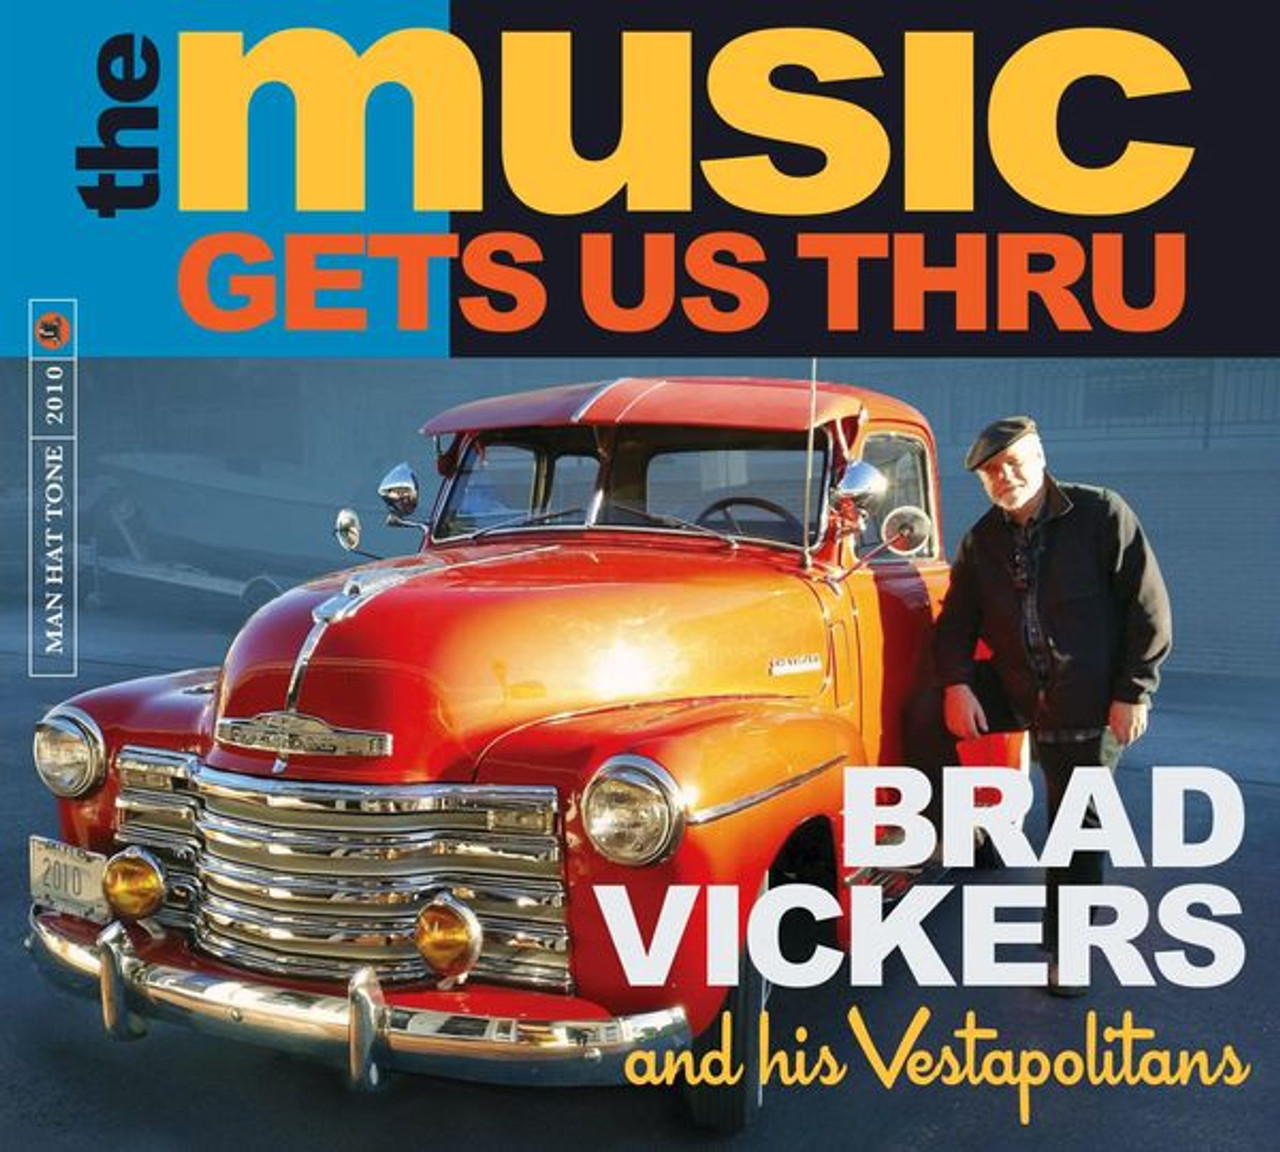 BRAD VICKERS AND HIS VESTAPOLITANS - THE MUSIC GETS US THOUGH